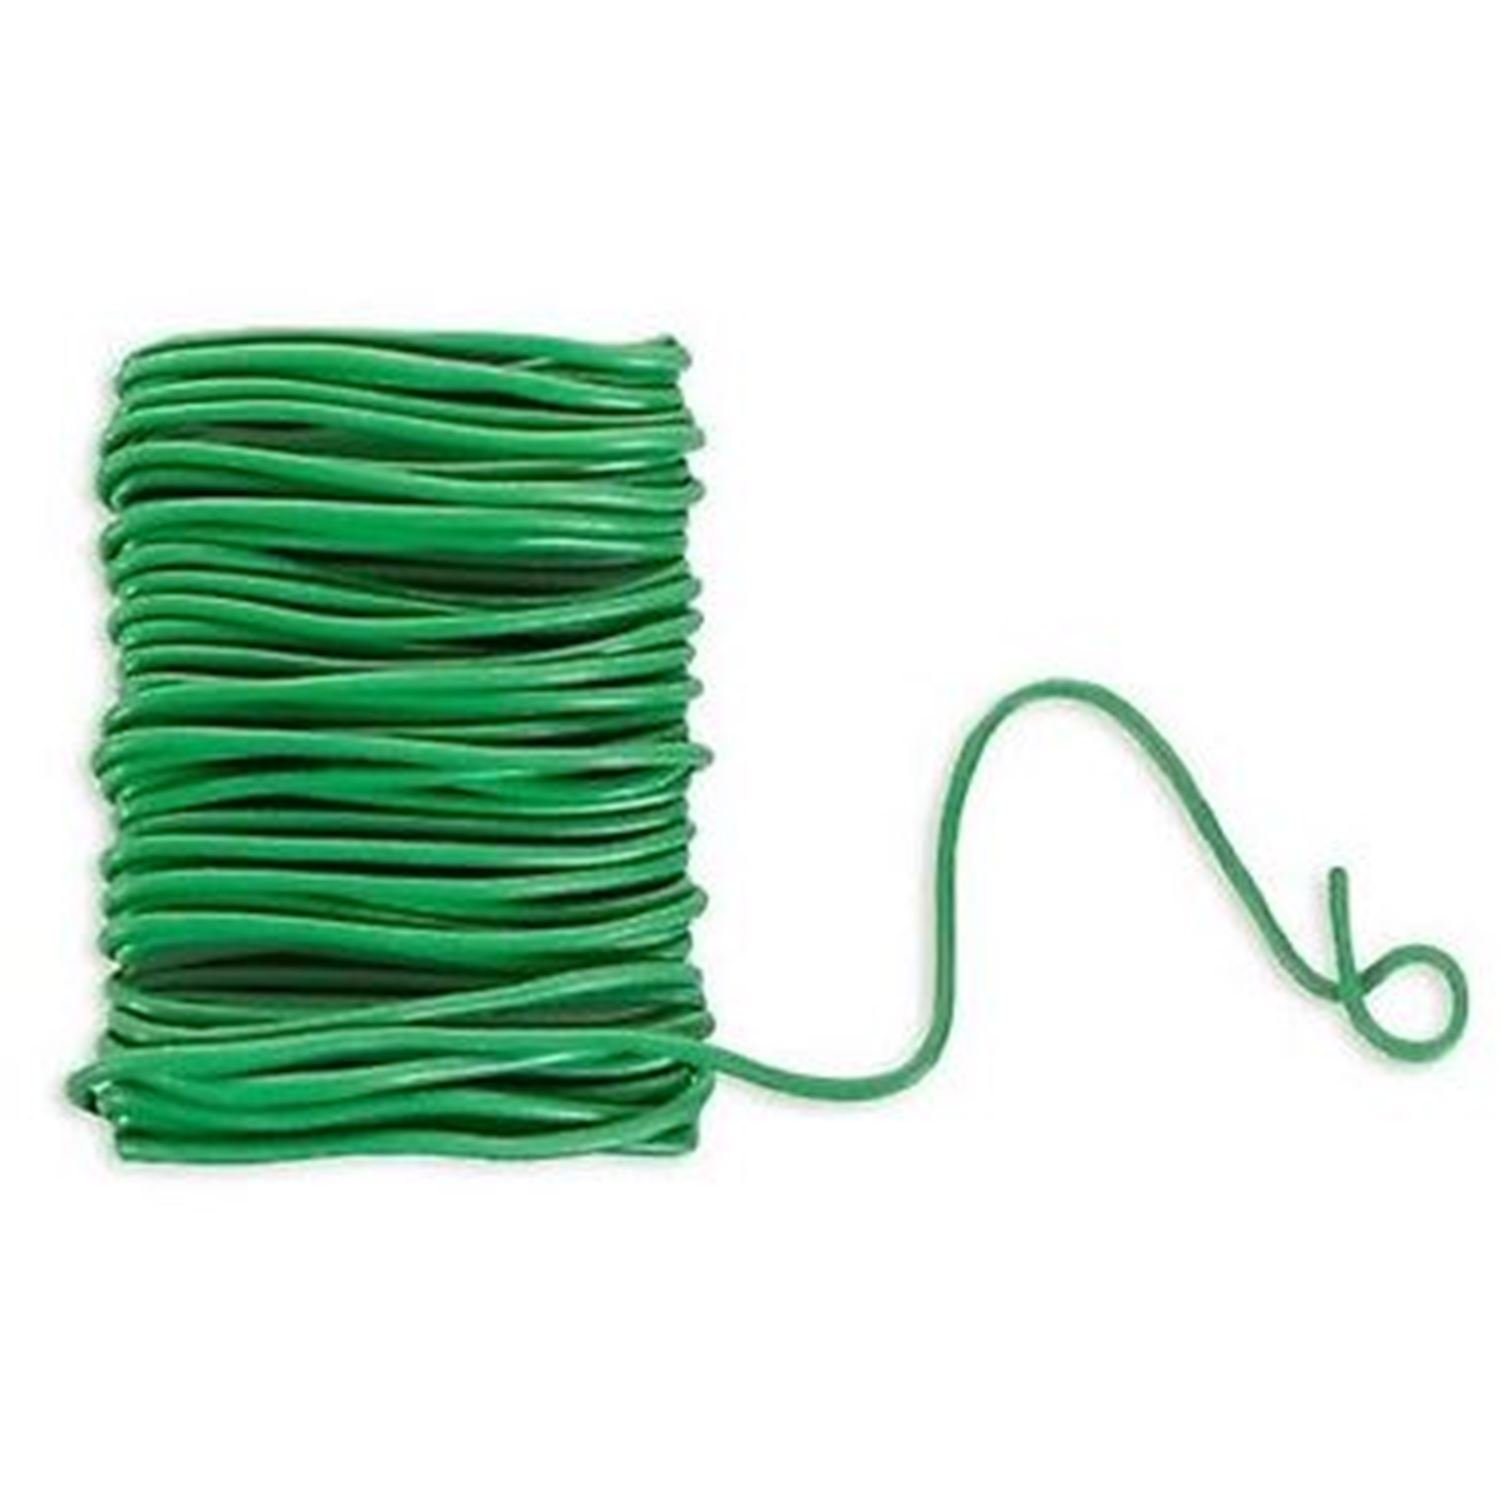 12Ft Rubber Coated Flex, Bendable, Reusable Plant Wire-Support Plant Vines, Stems & Stalks-Won't Rust, Slip or Stretch-Perfect For Tying Vines To Stakes-Support Fruit,Laden Branches Against Wind